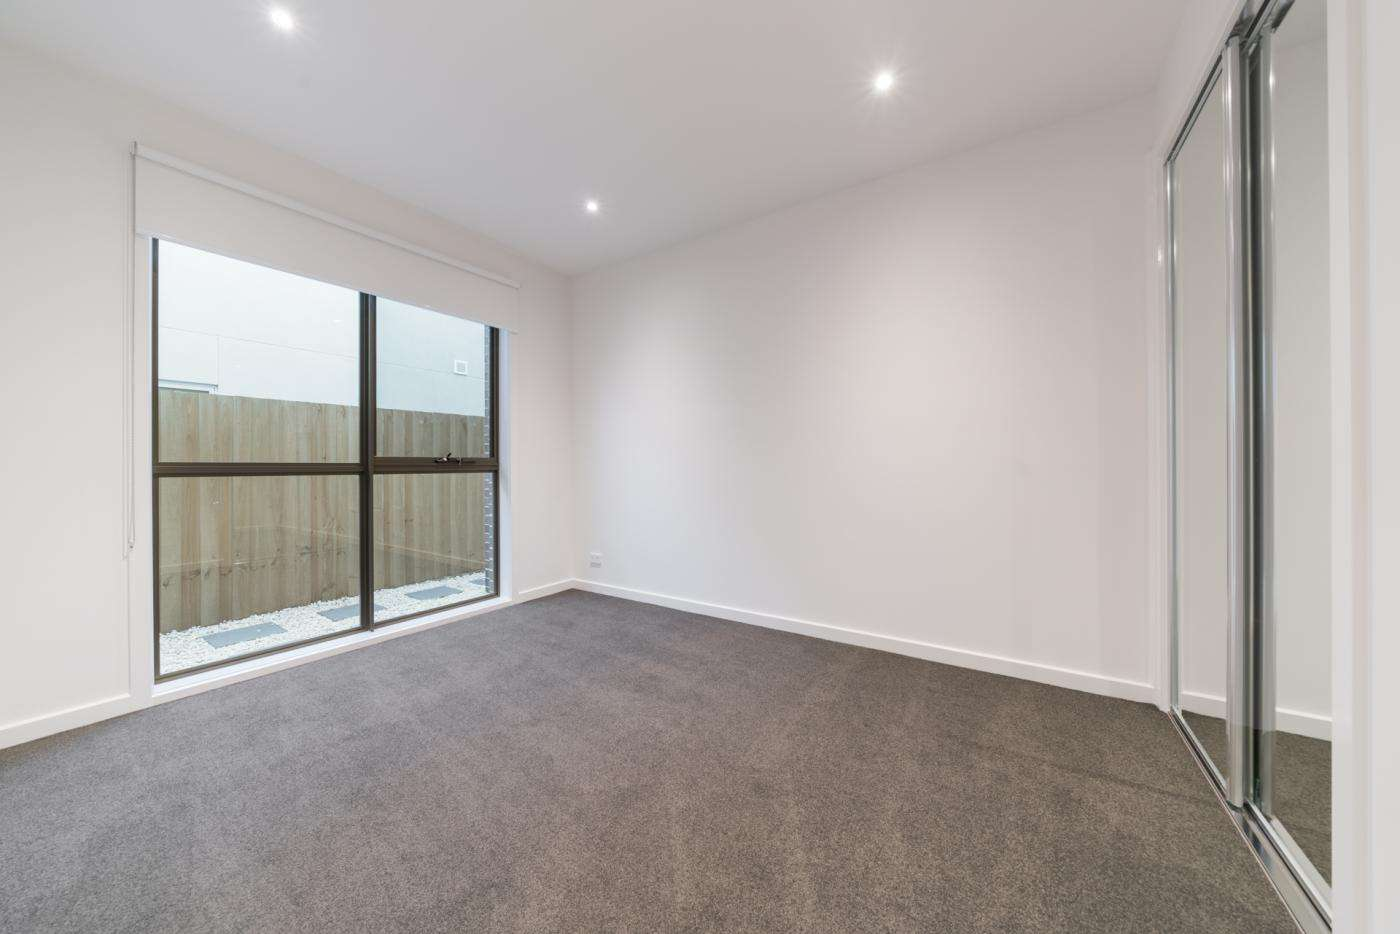 Sixth view of Homely townhouse listing, 57A Fromer Street, Bentleigh VIC 3204